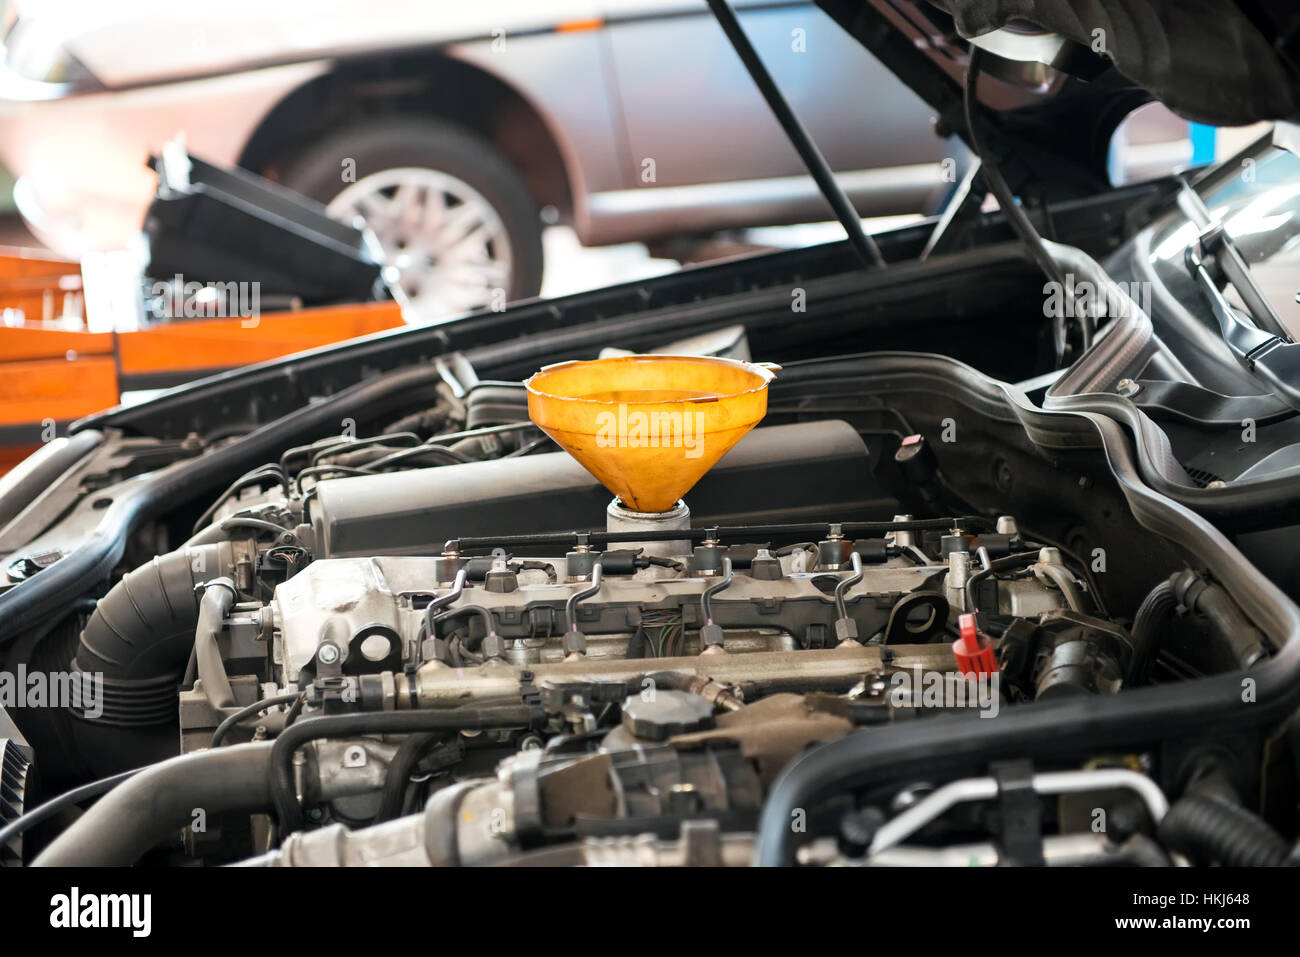 Close-up side view of car engine under opened hood with funnel inserted for oil pouring maintenance - Stock Image